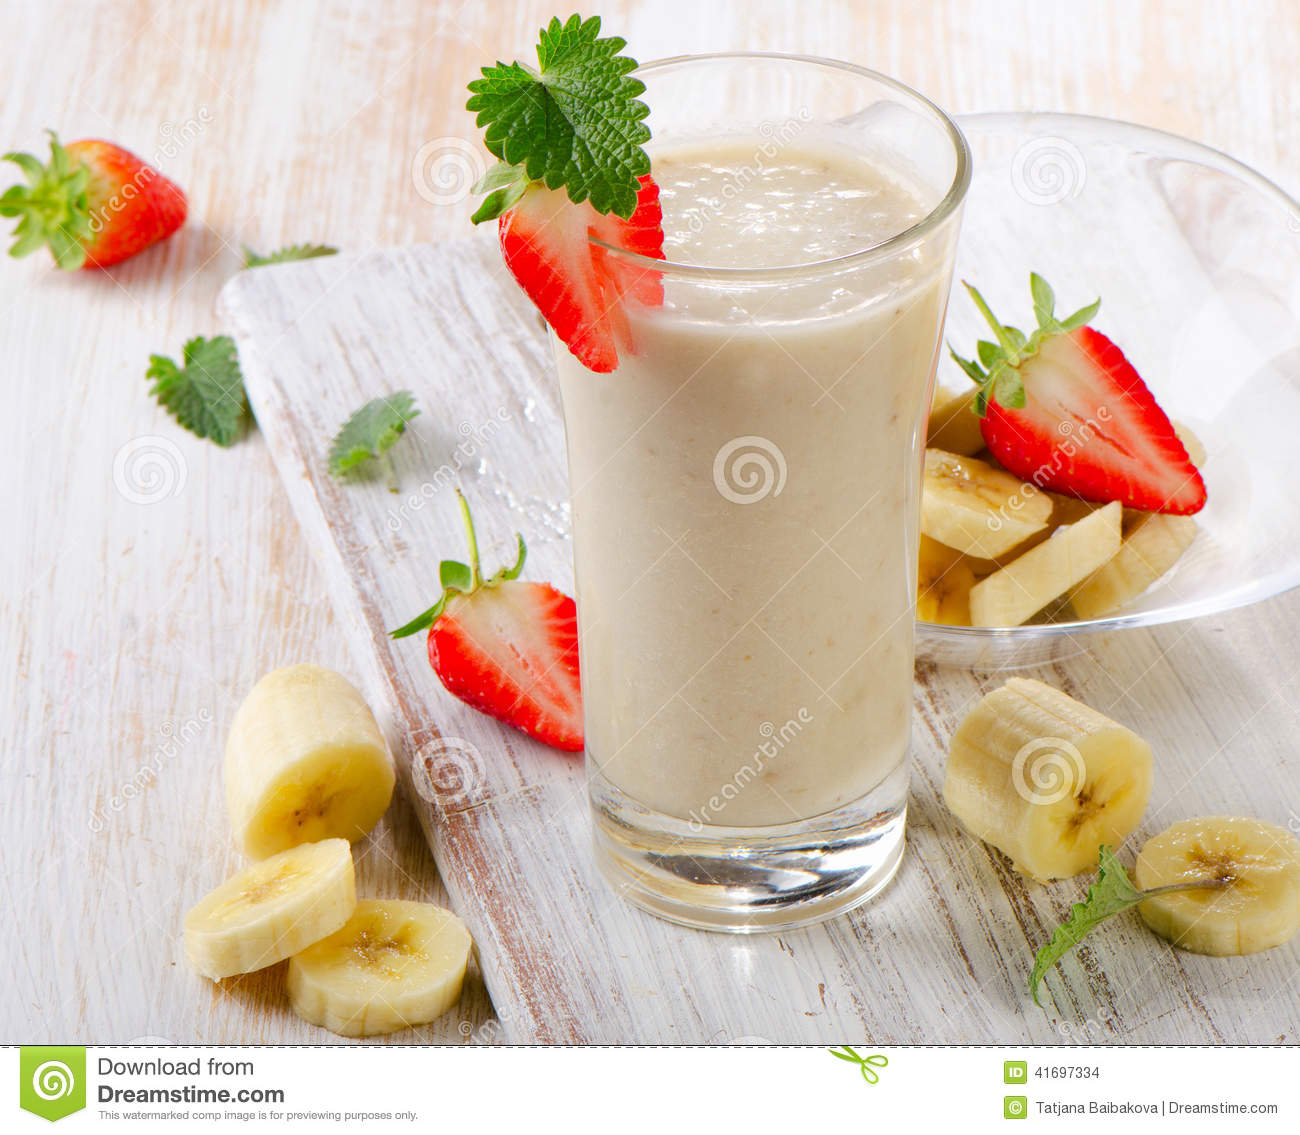 banana dating site Banana peels can help you treat psoriasis  subscribe to women daily magazine newsletter 500000 + happy  millionairematchcom - the best dating site for.